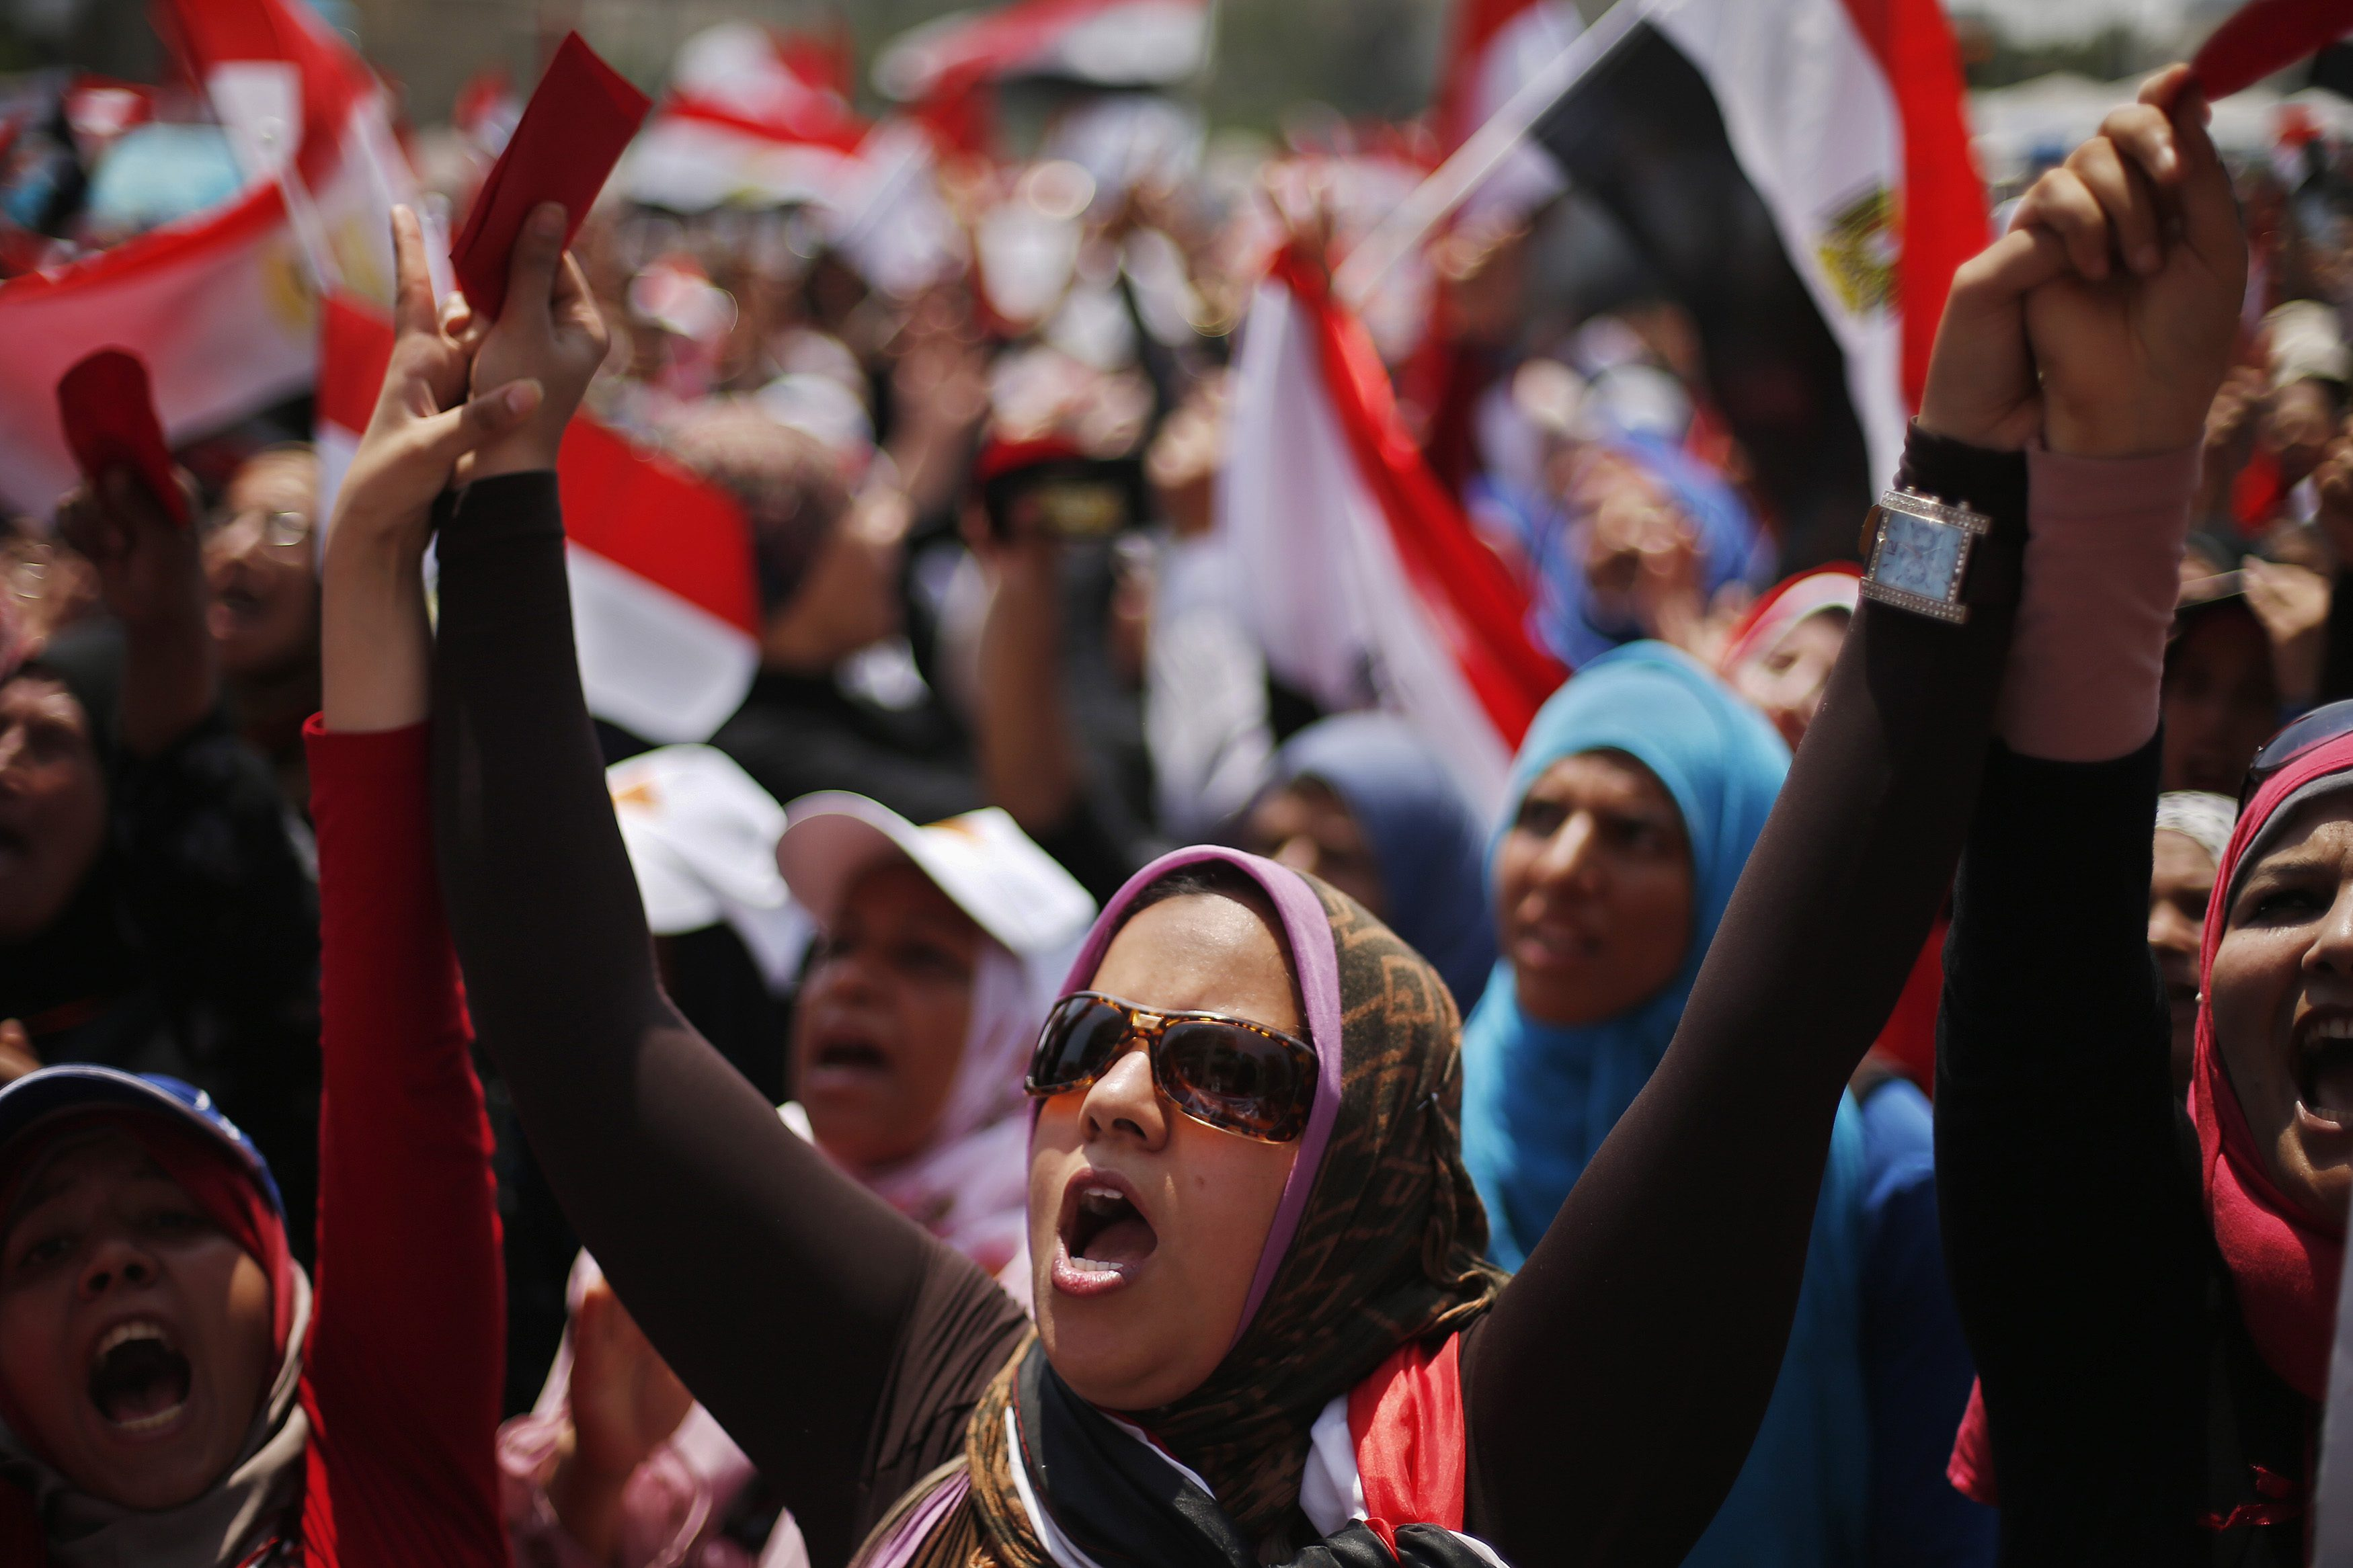 Egypt govt uses sexual assaults for political gains - NGO